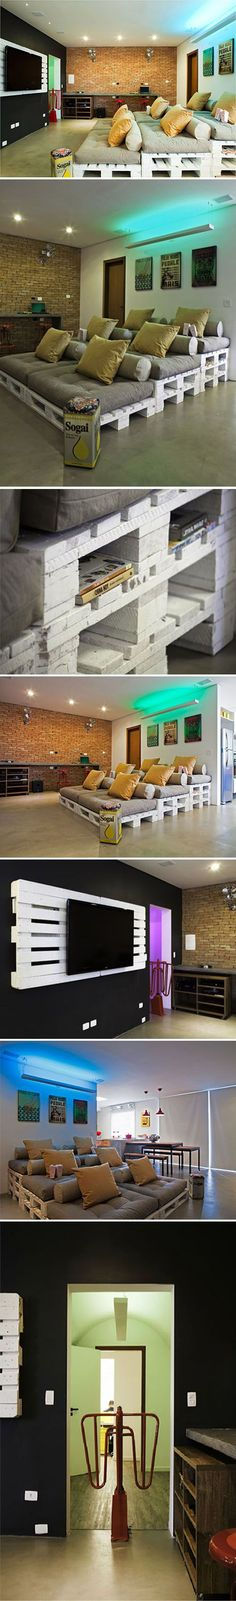 Home Cinema Room- So smart and simple